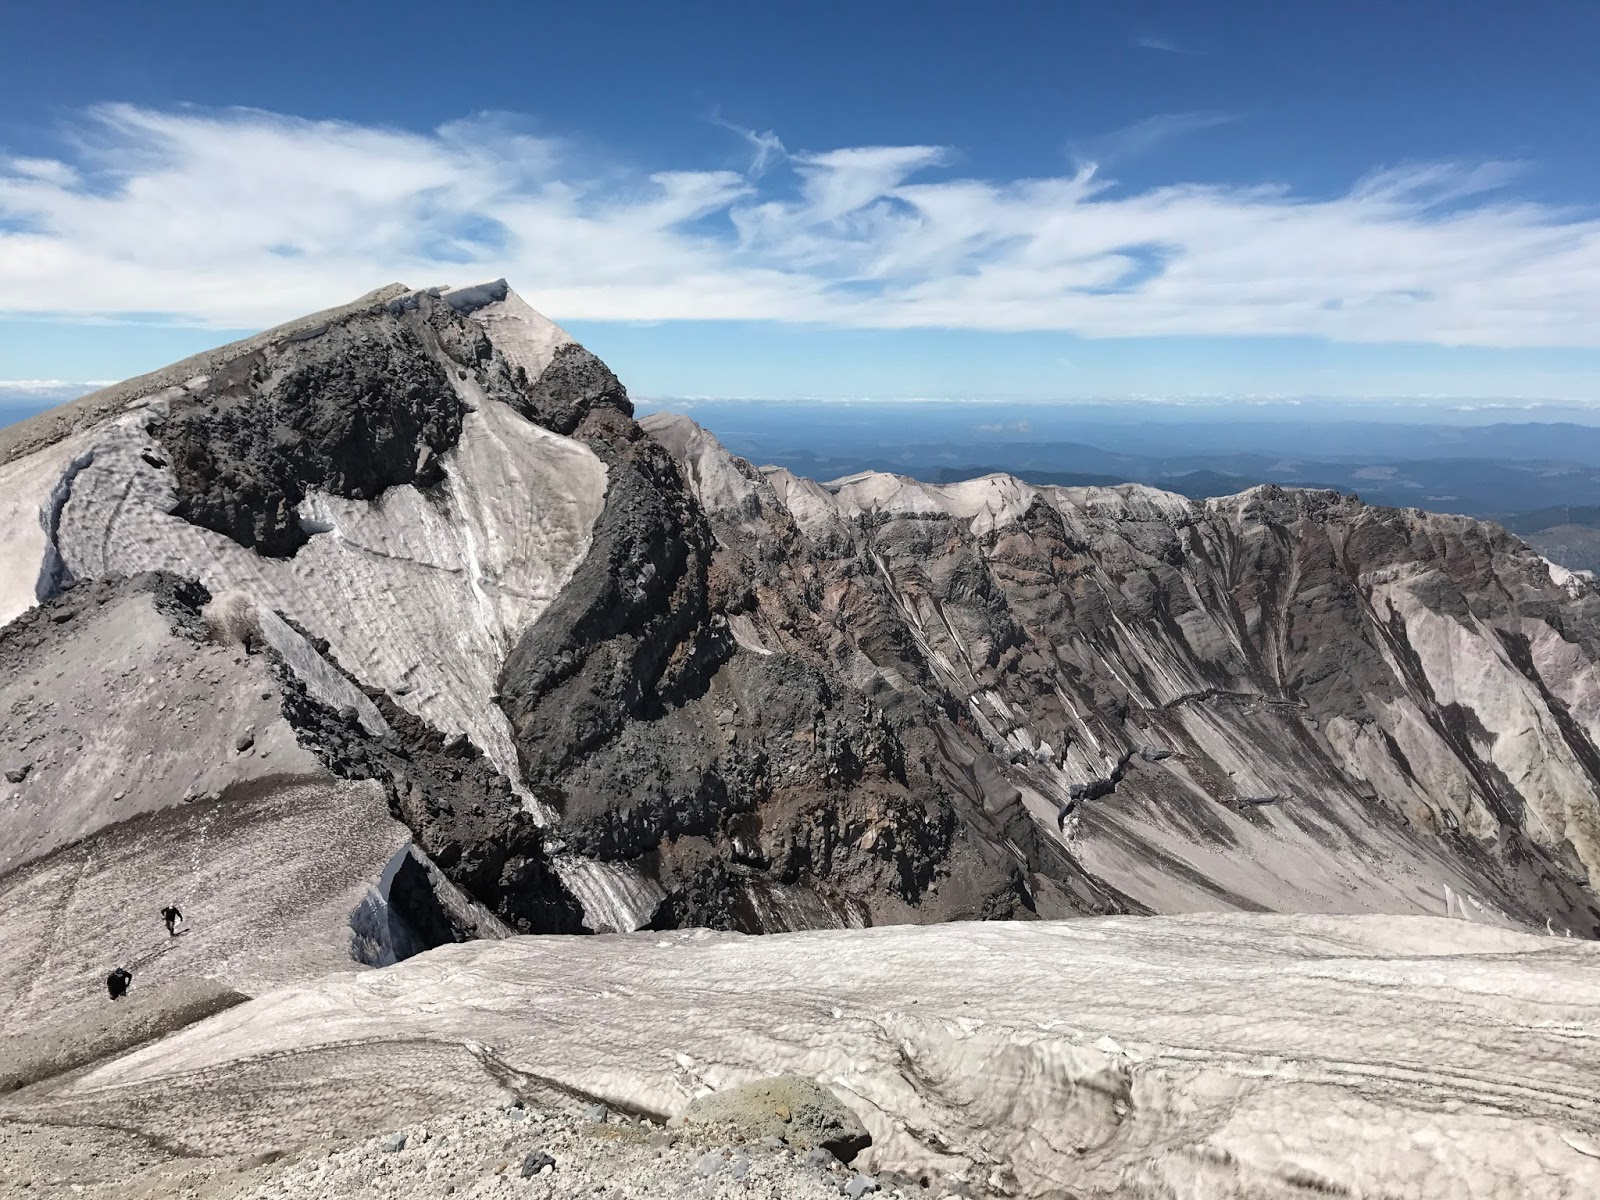 Summit with a Geologist